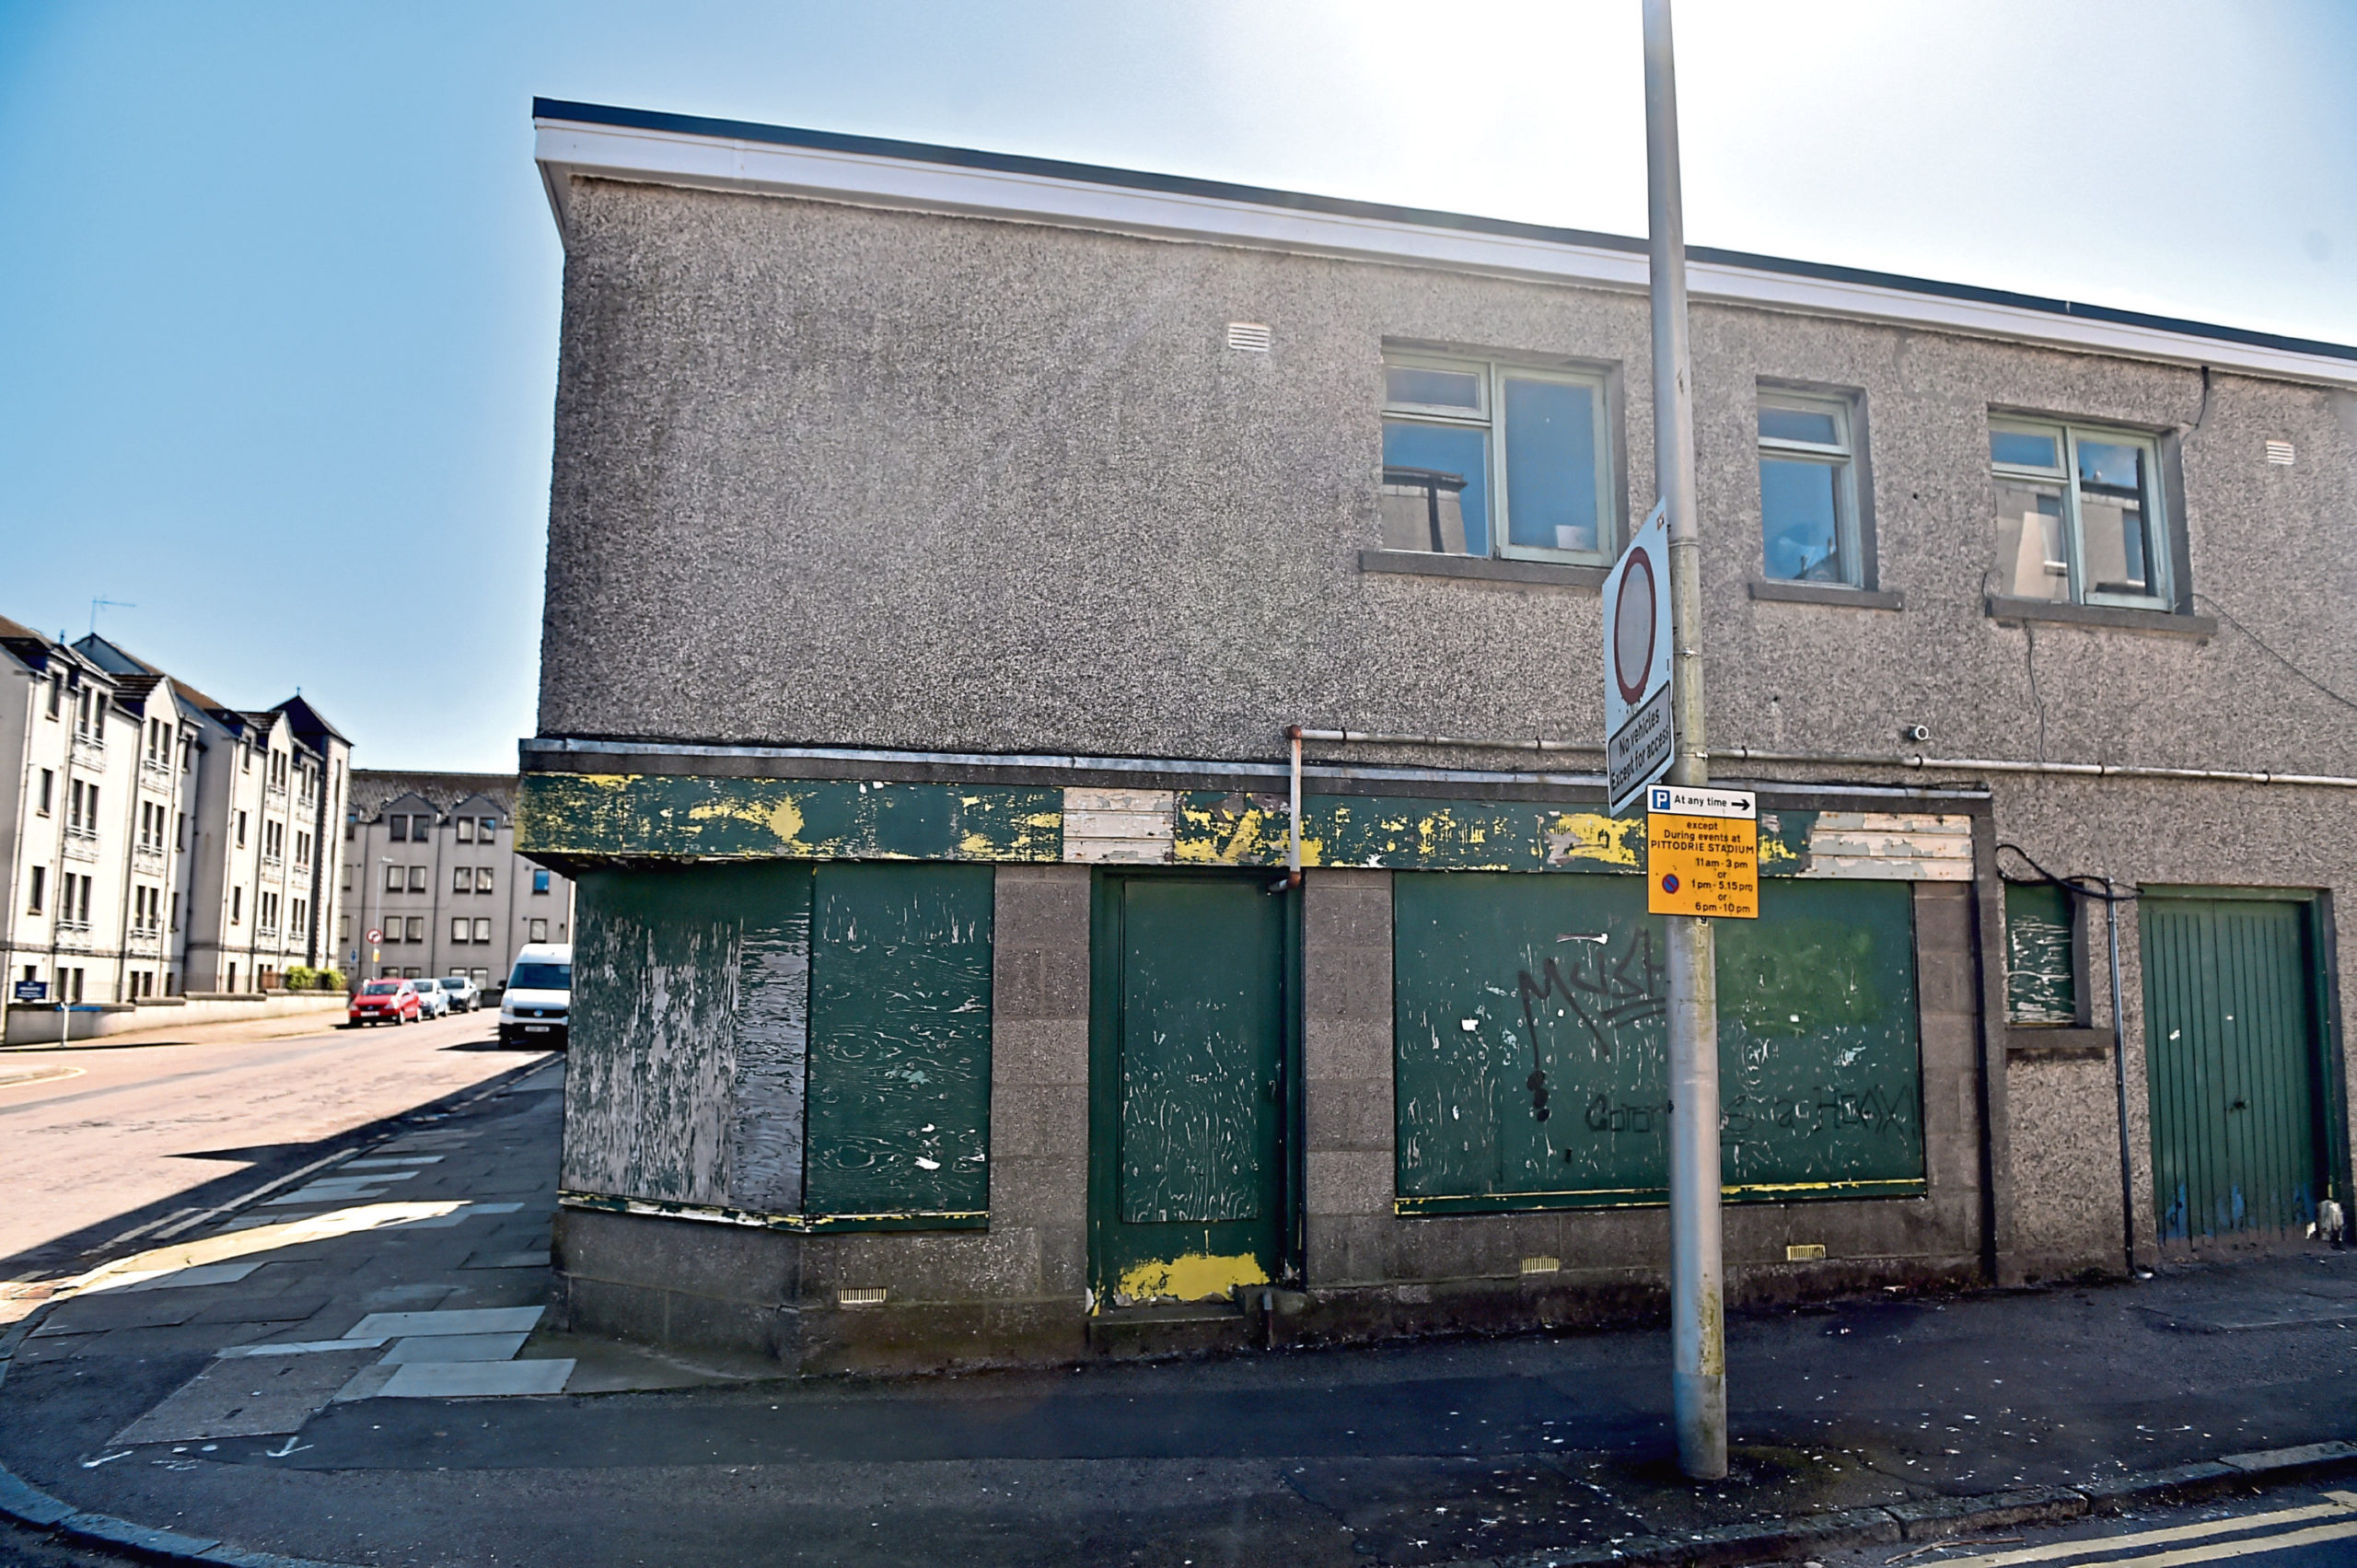 The property on the corner of Pittodrie Street and Ardarroch Street is currently vacant